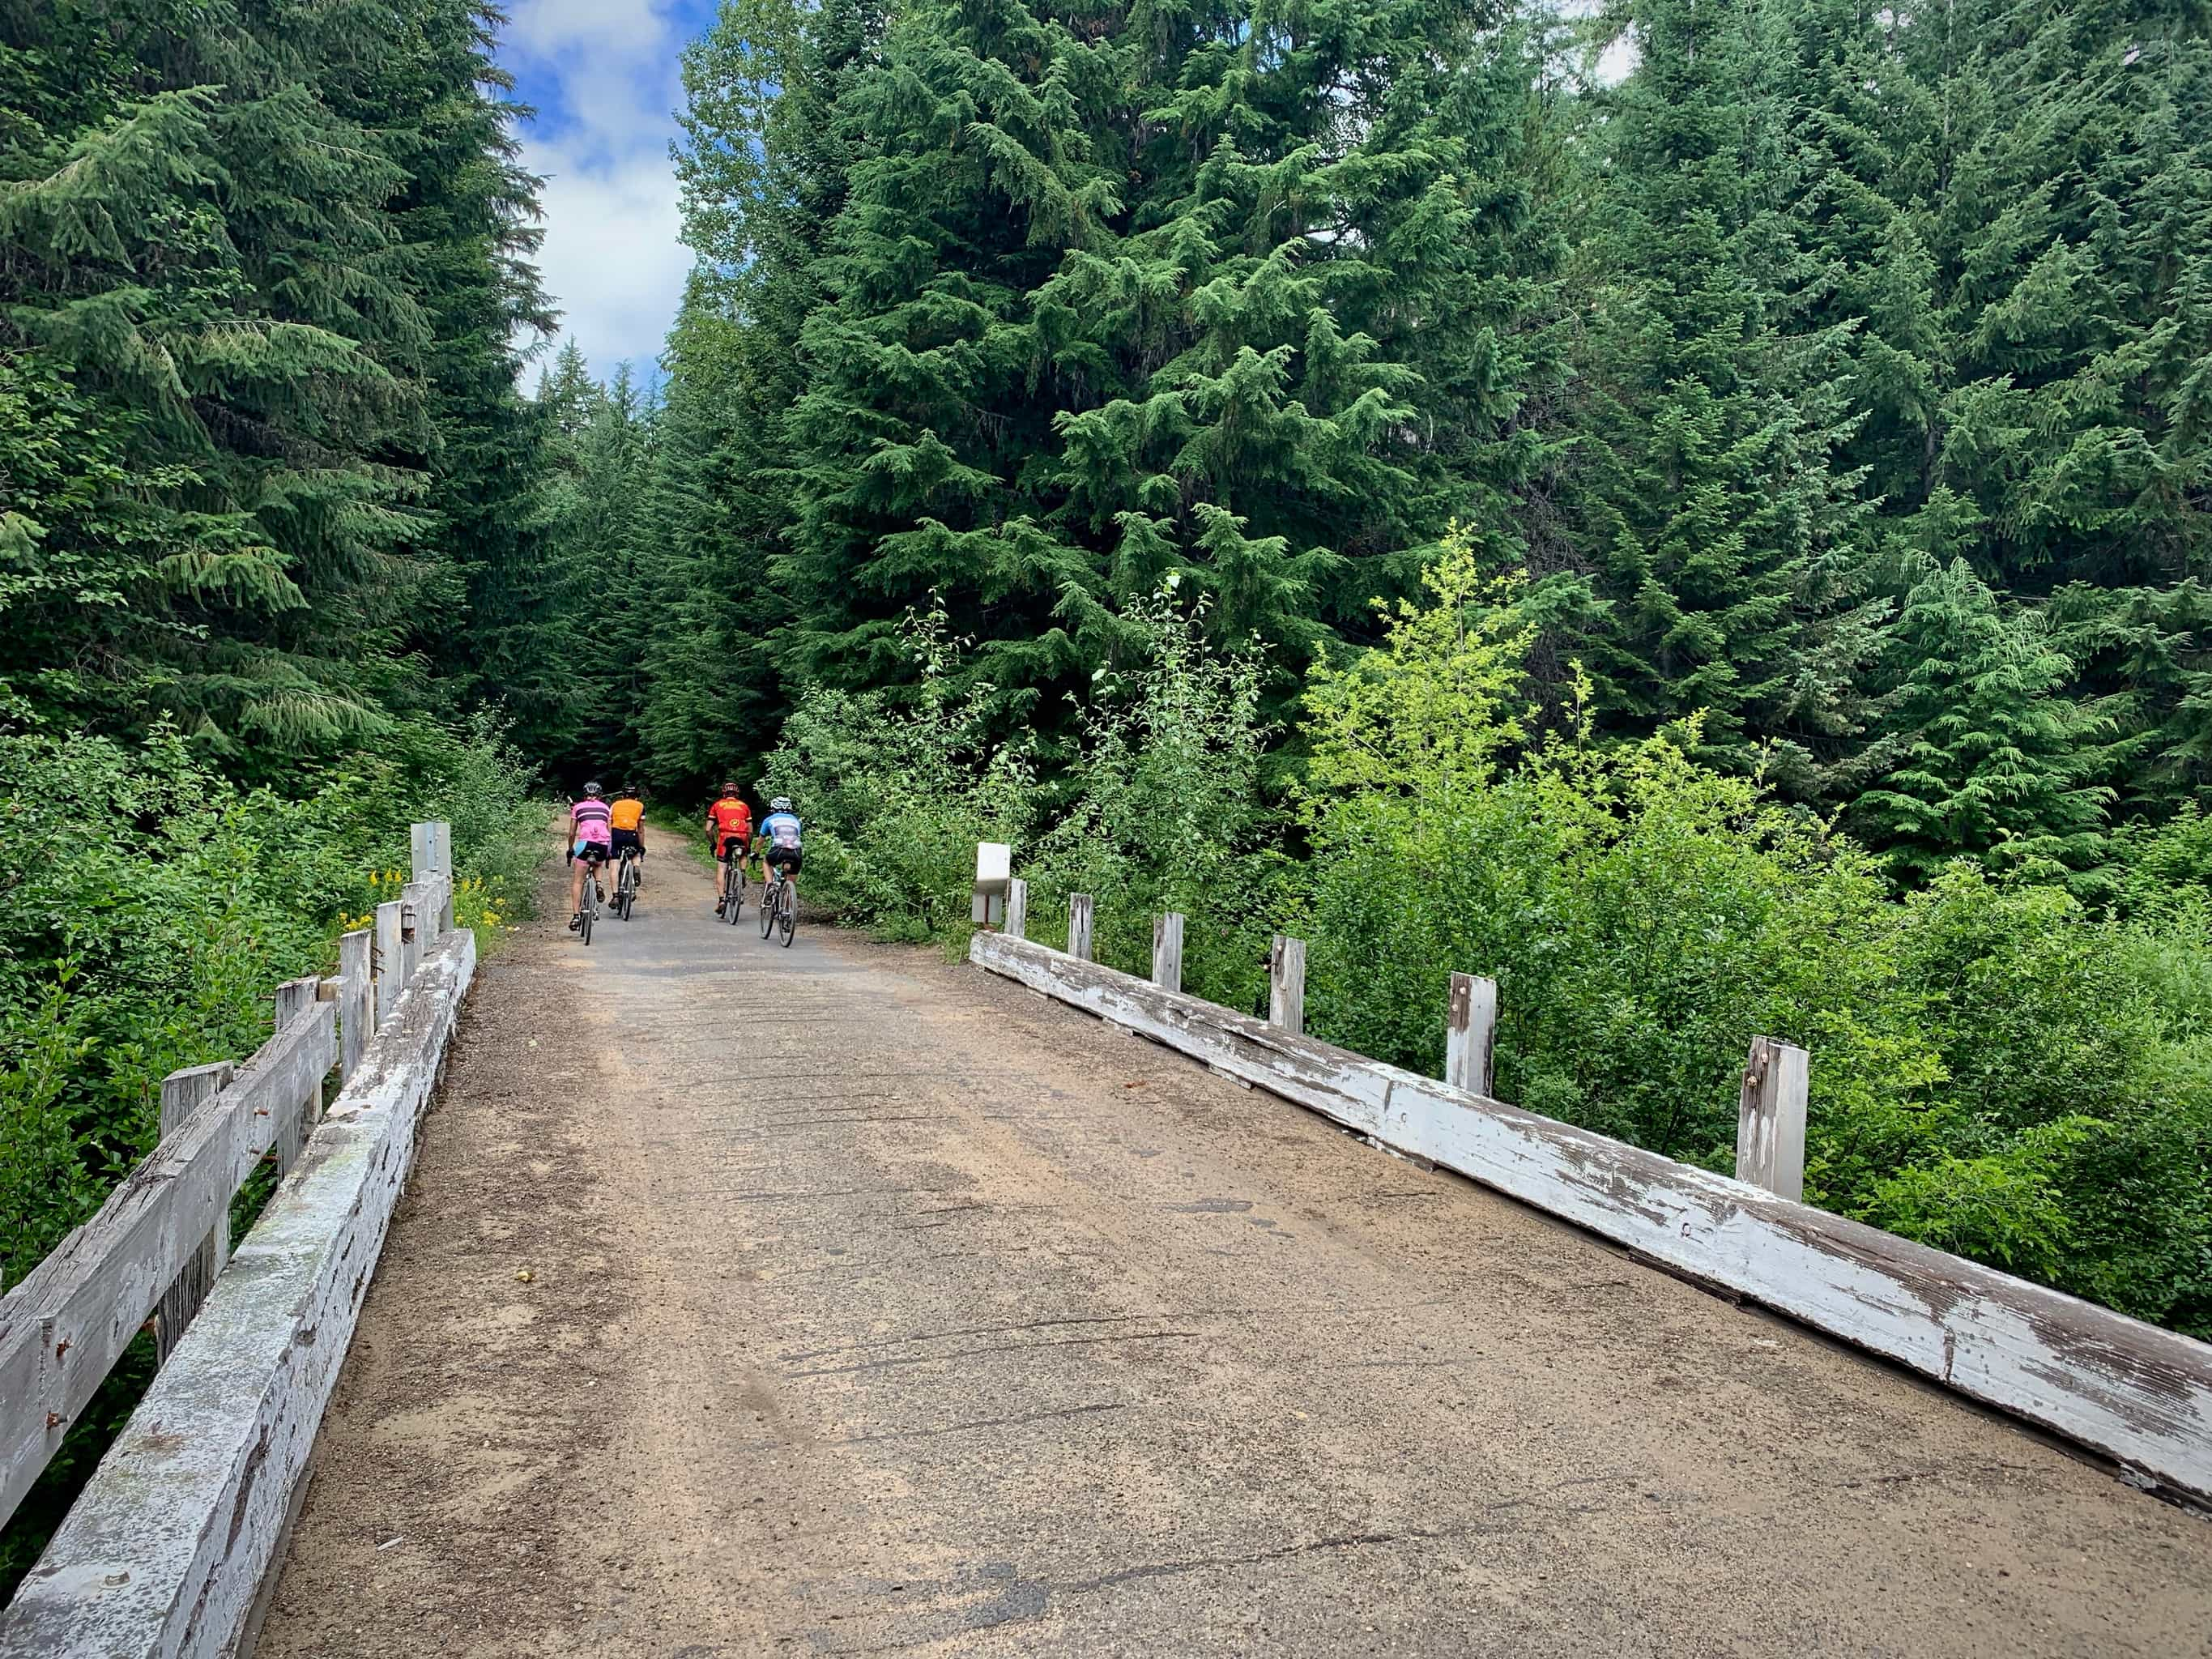 Cyclists on gravel road on the north side of South Prairie and the Big Lava Bed in Washington state.